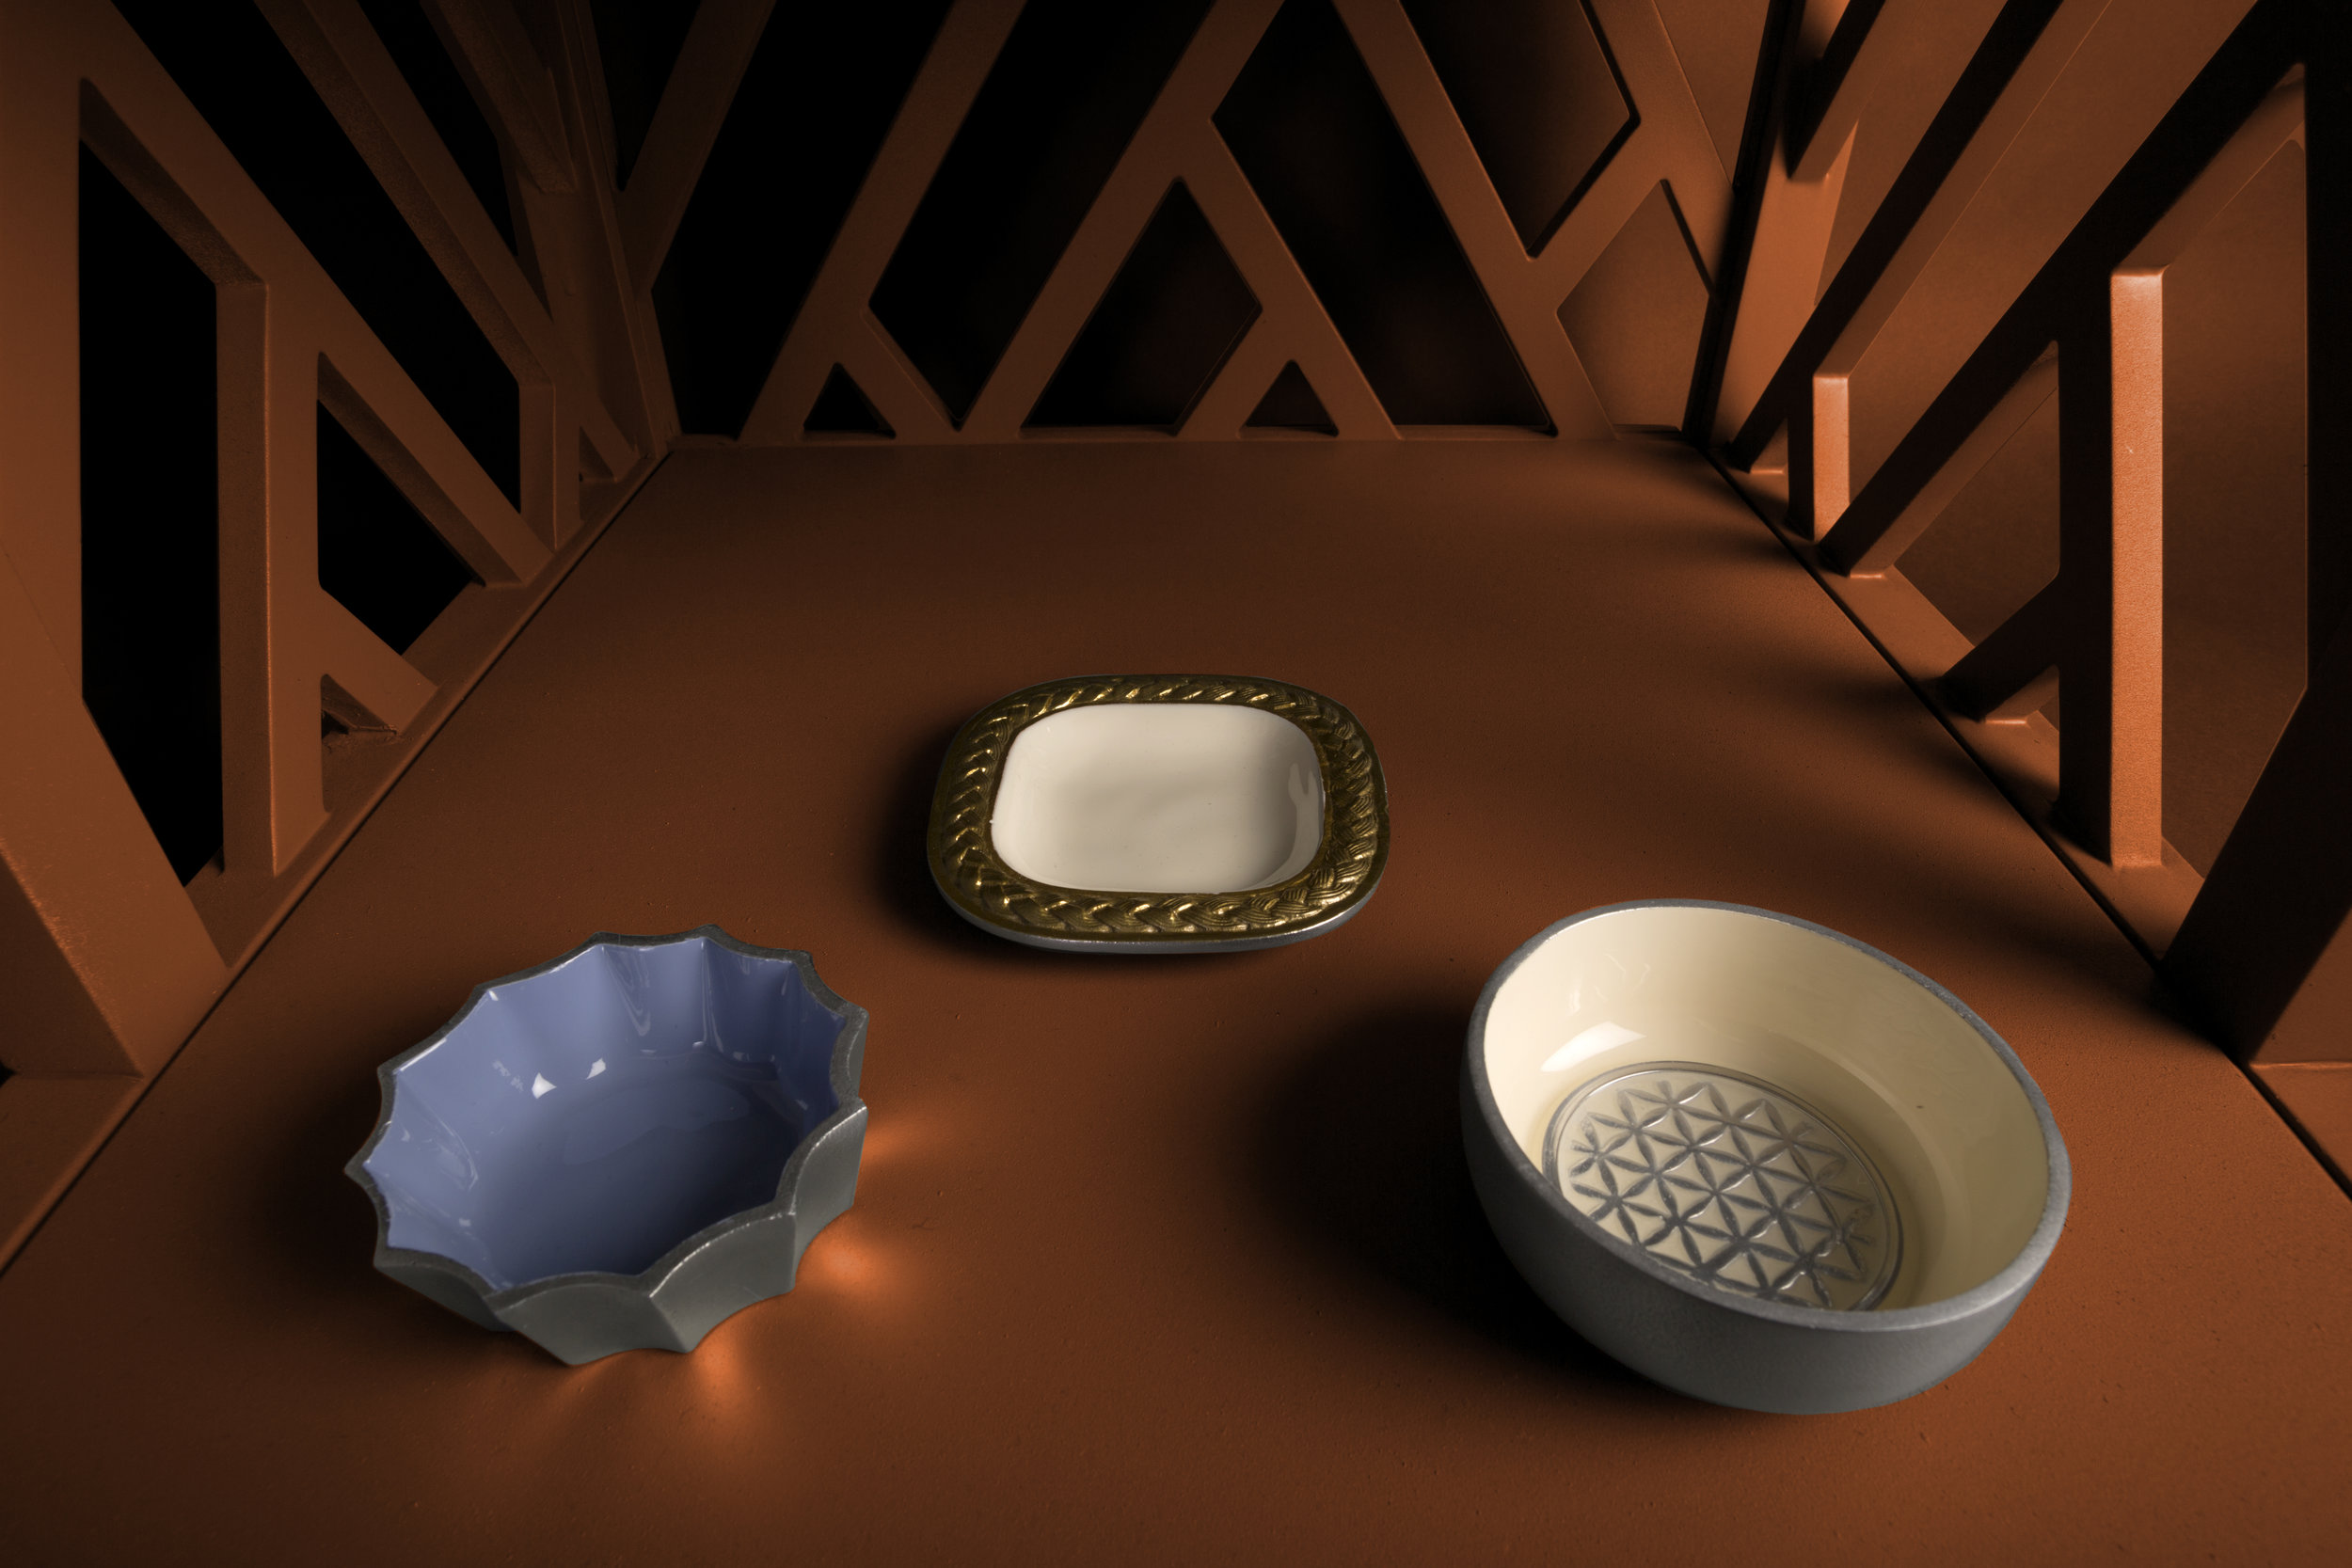 Marigold_Categories_Mixed_Dishes and Bowls.jpg